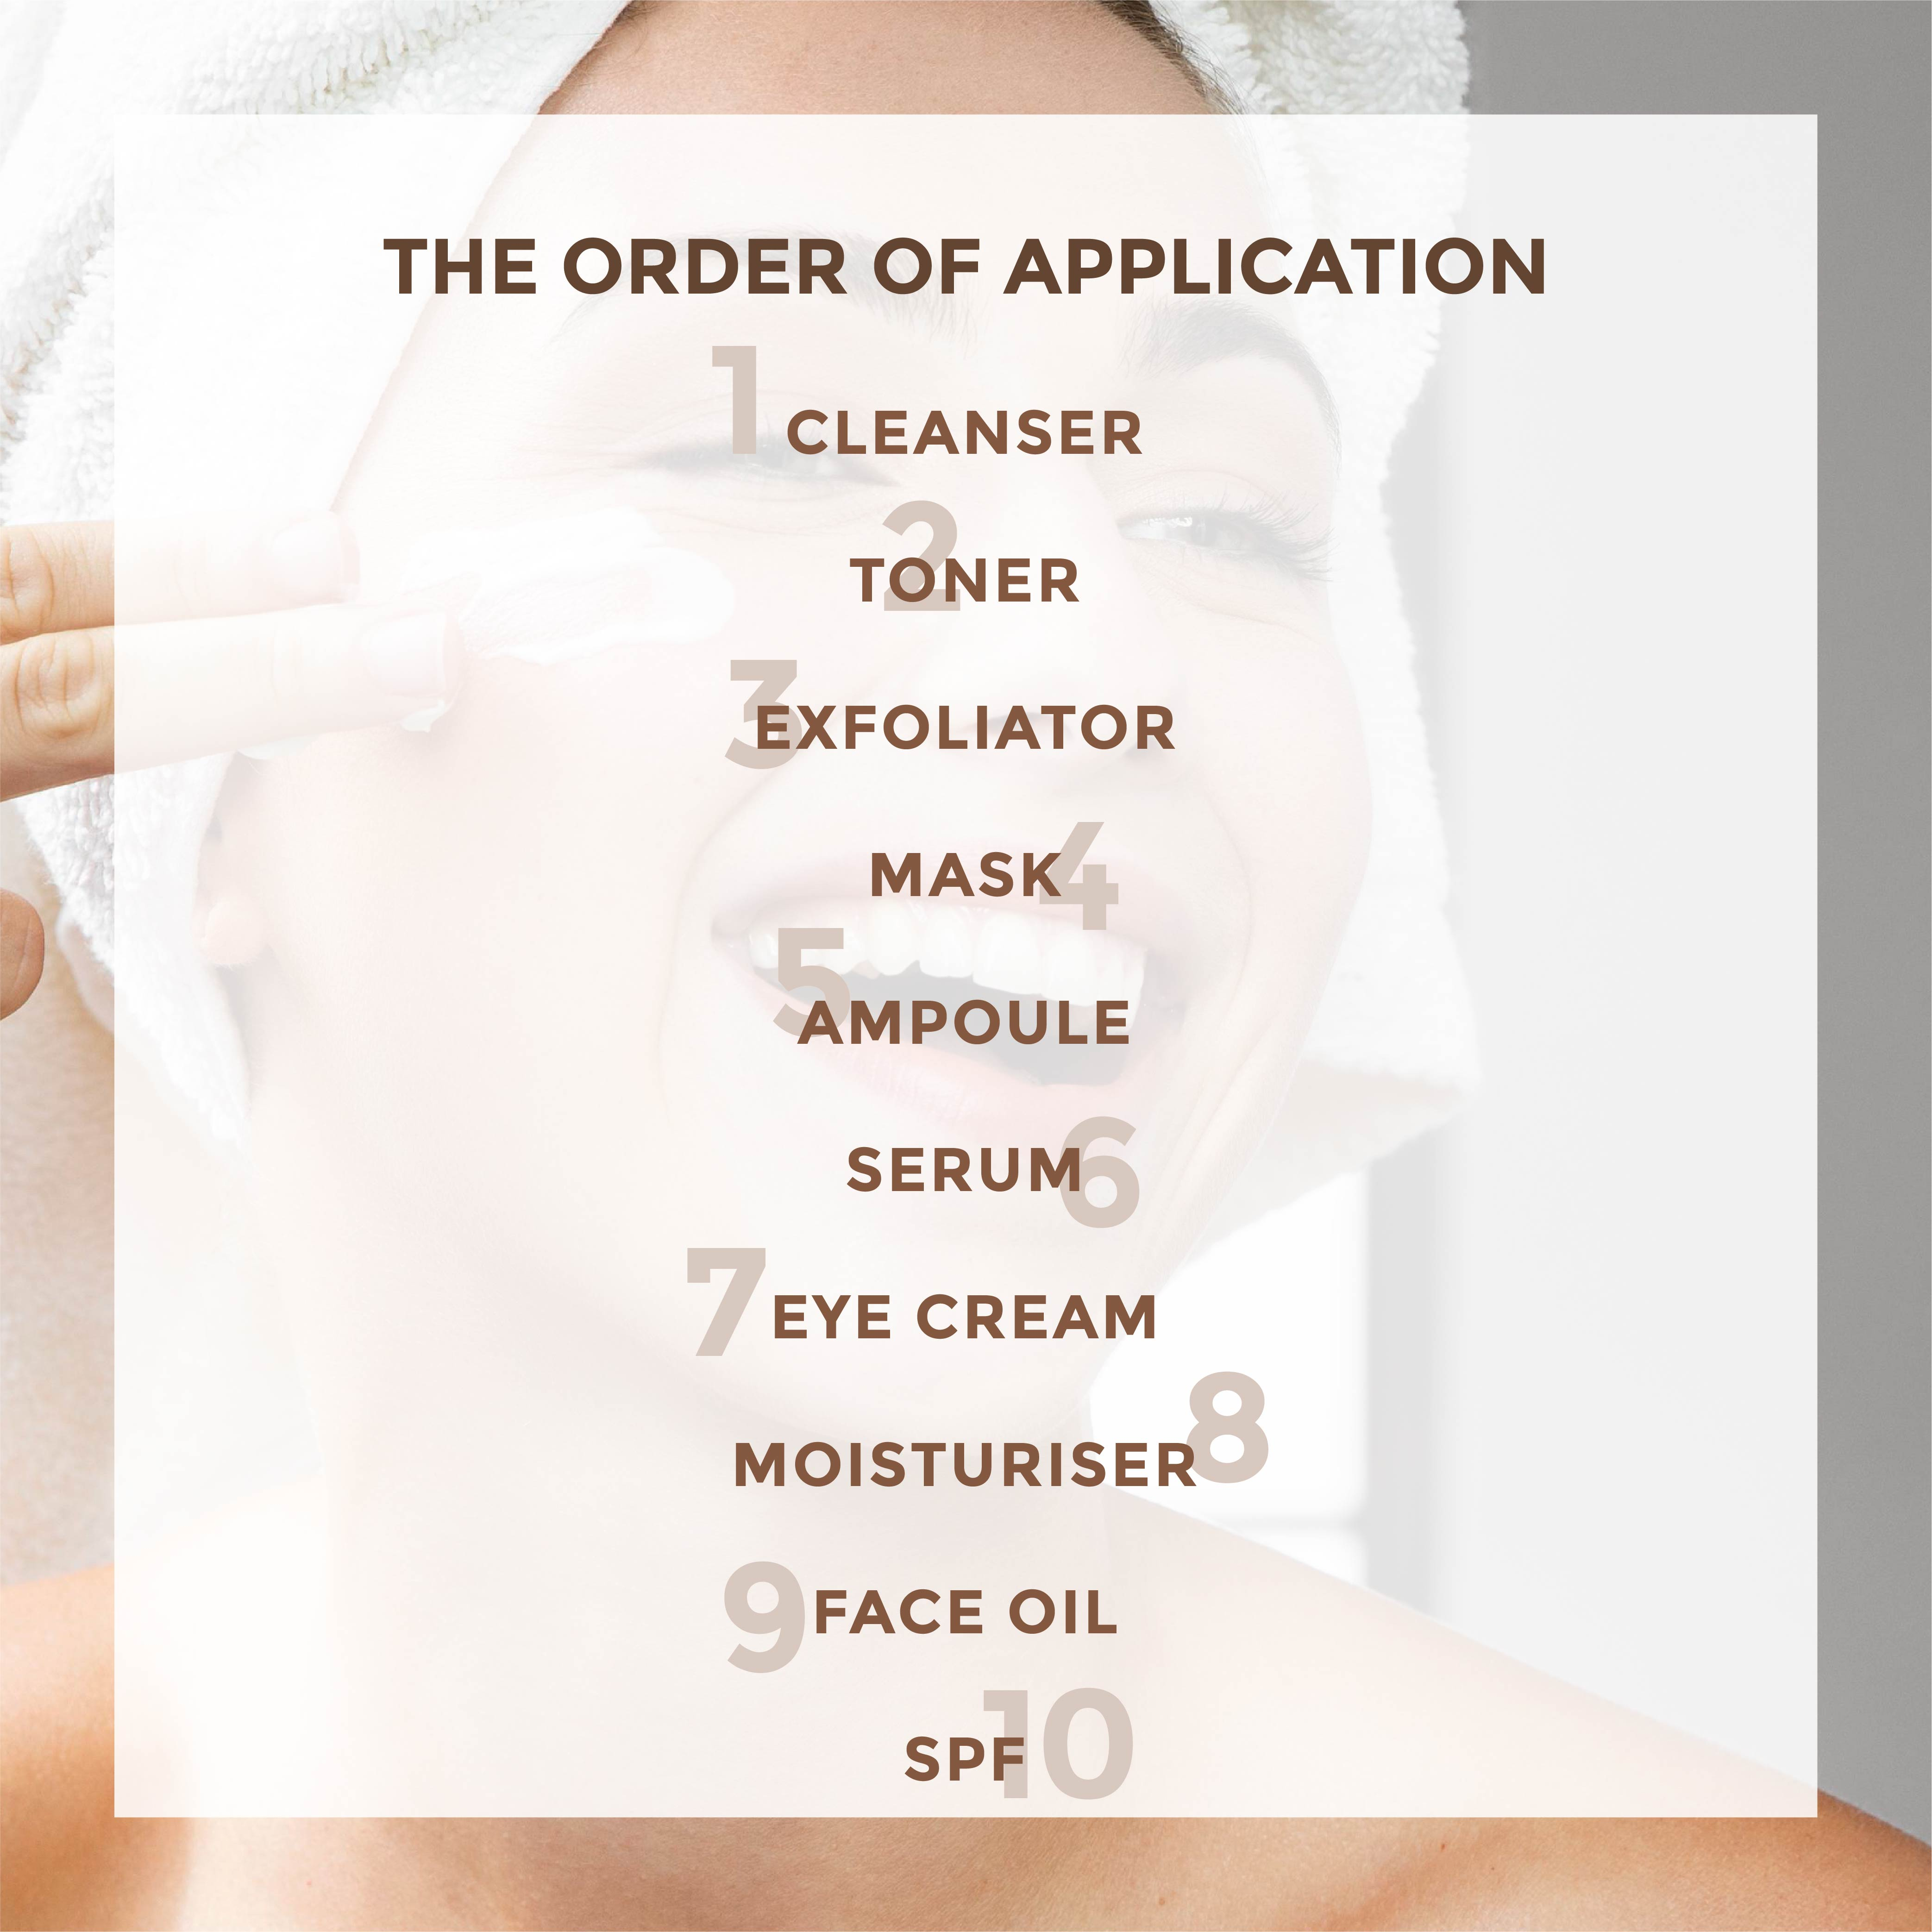 This is an image of the order of application for skincare products